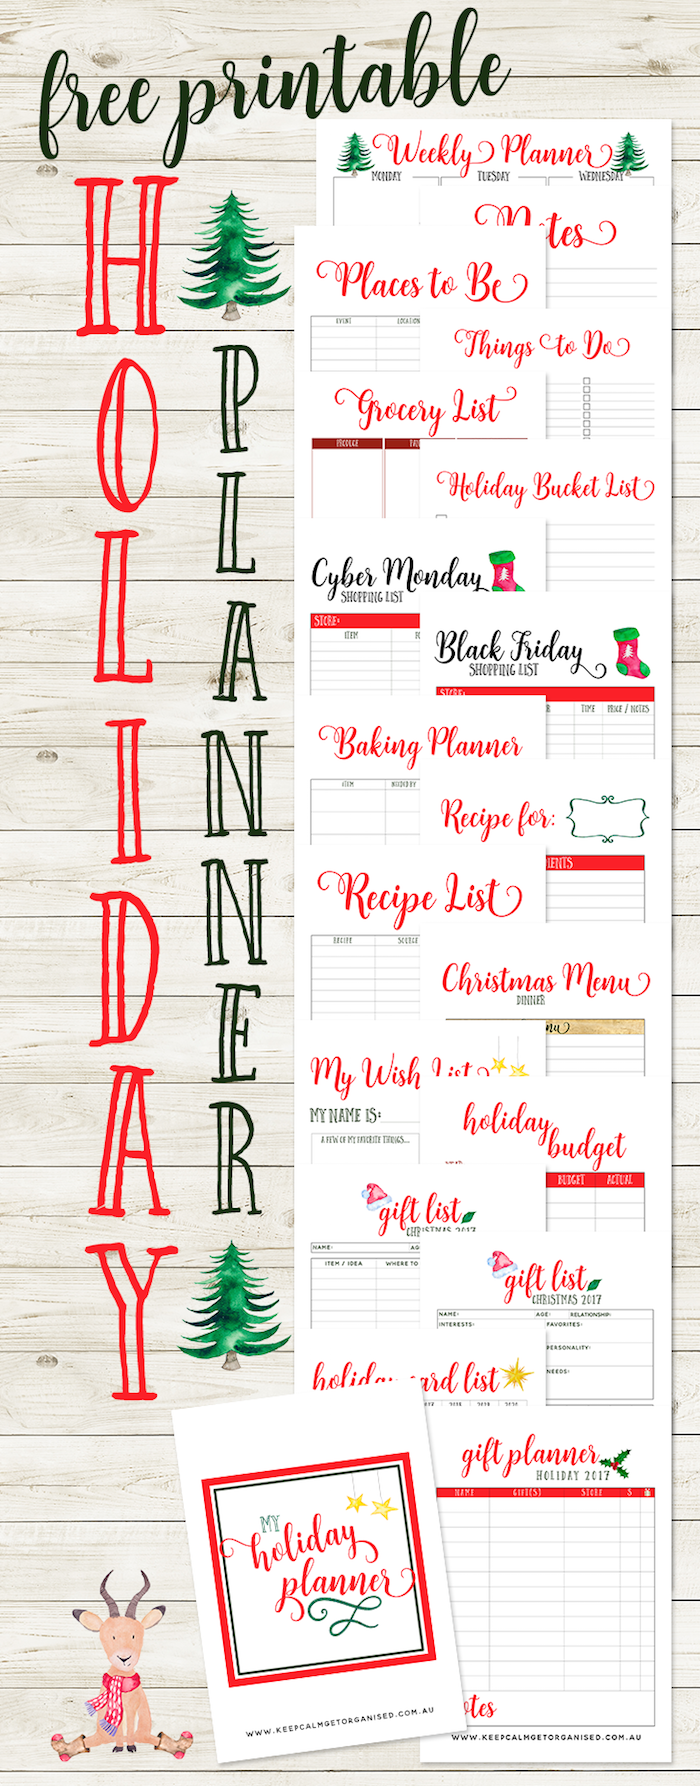 FREE Christmas Planner! 20+ Pages Of Lists & Planners